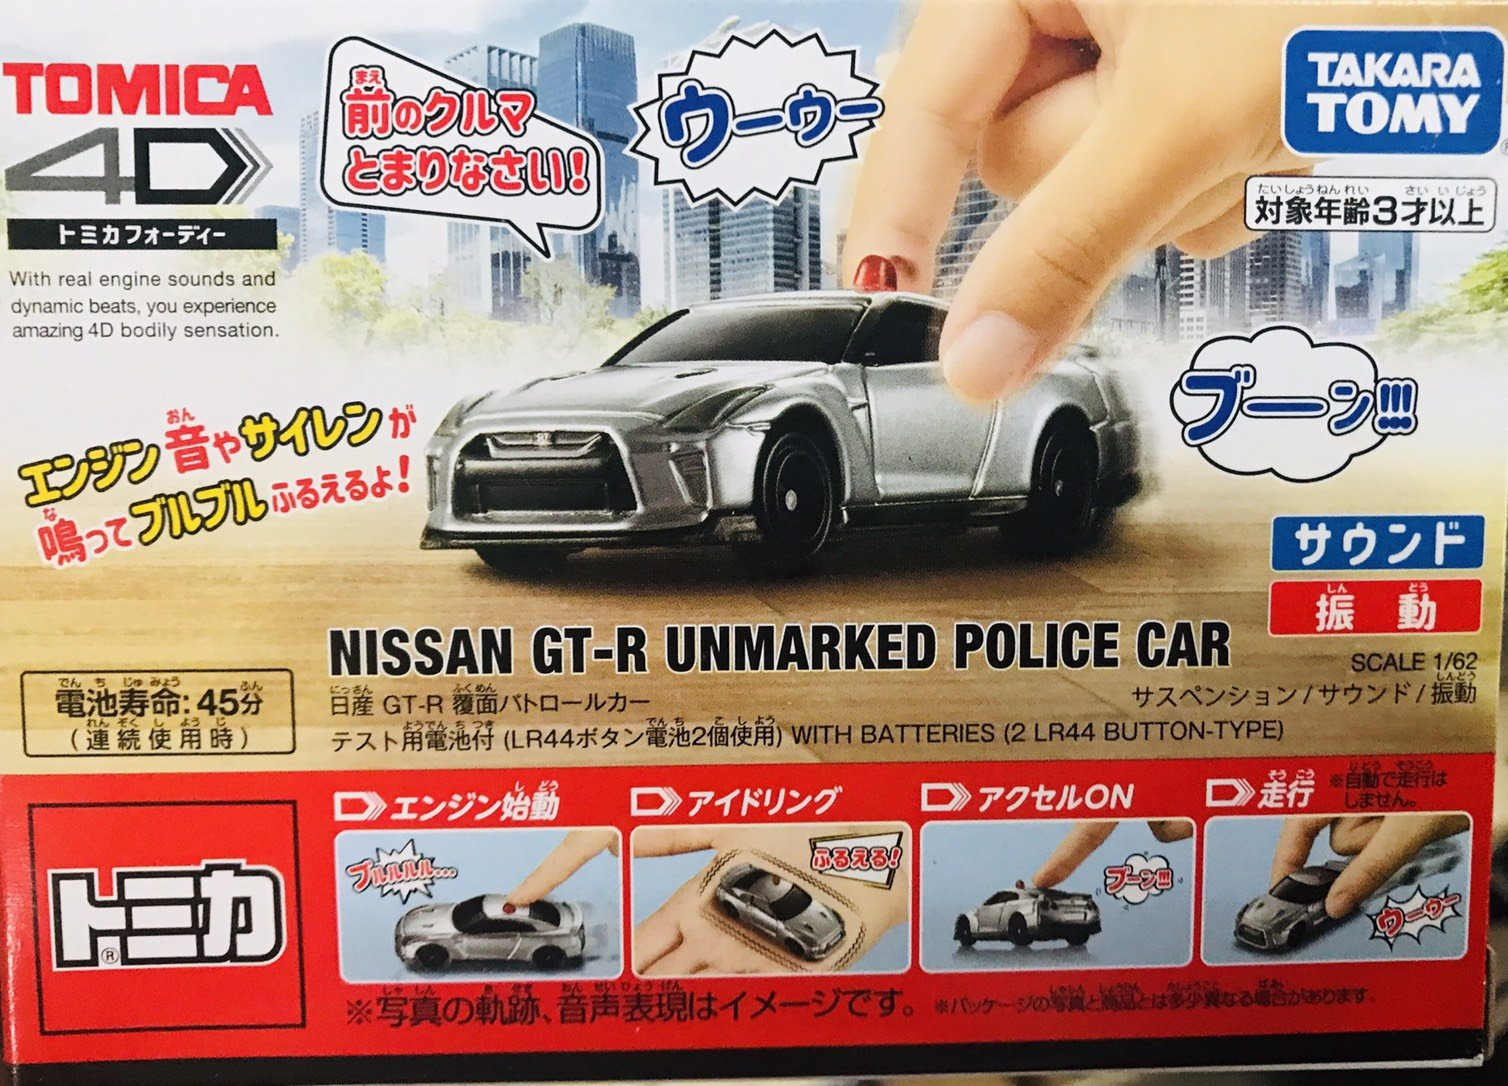 Tomica 多美 4D系列 NISSAN GT-R UNMARKED POLICE CAR